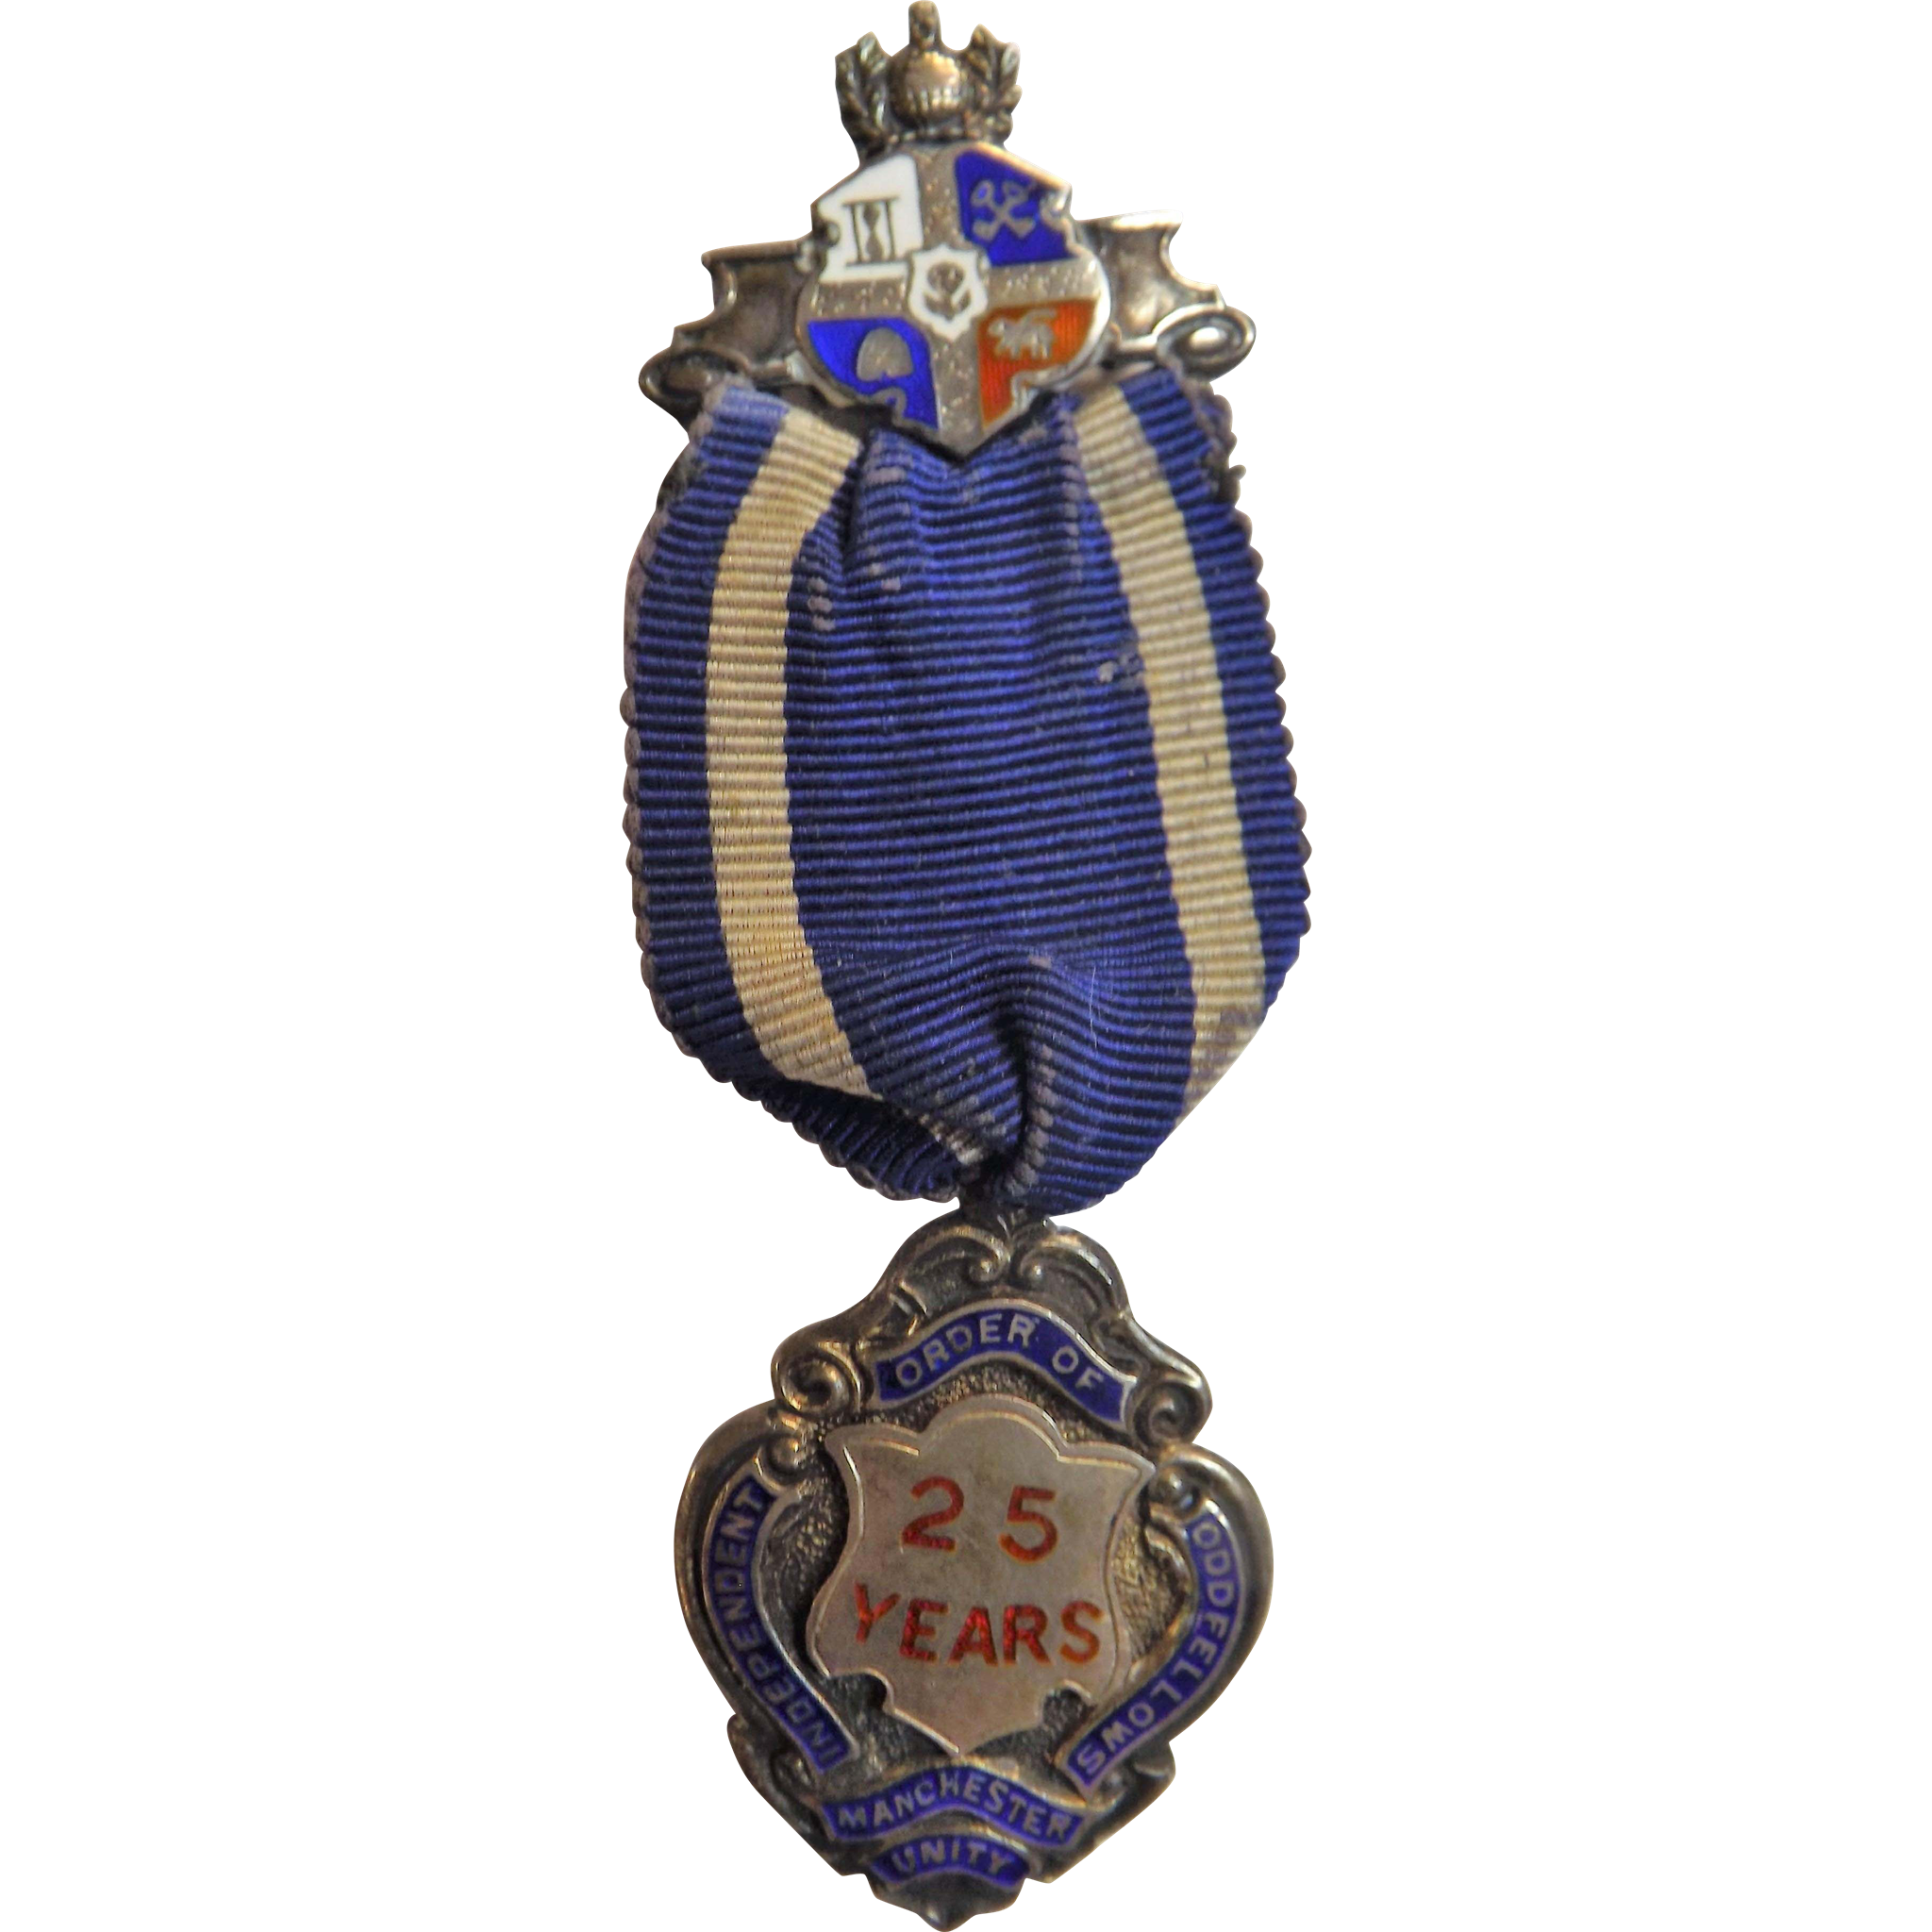 Oddfellows 25 Year Sterling Silver Medal /Jewel